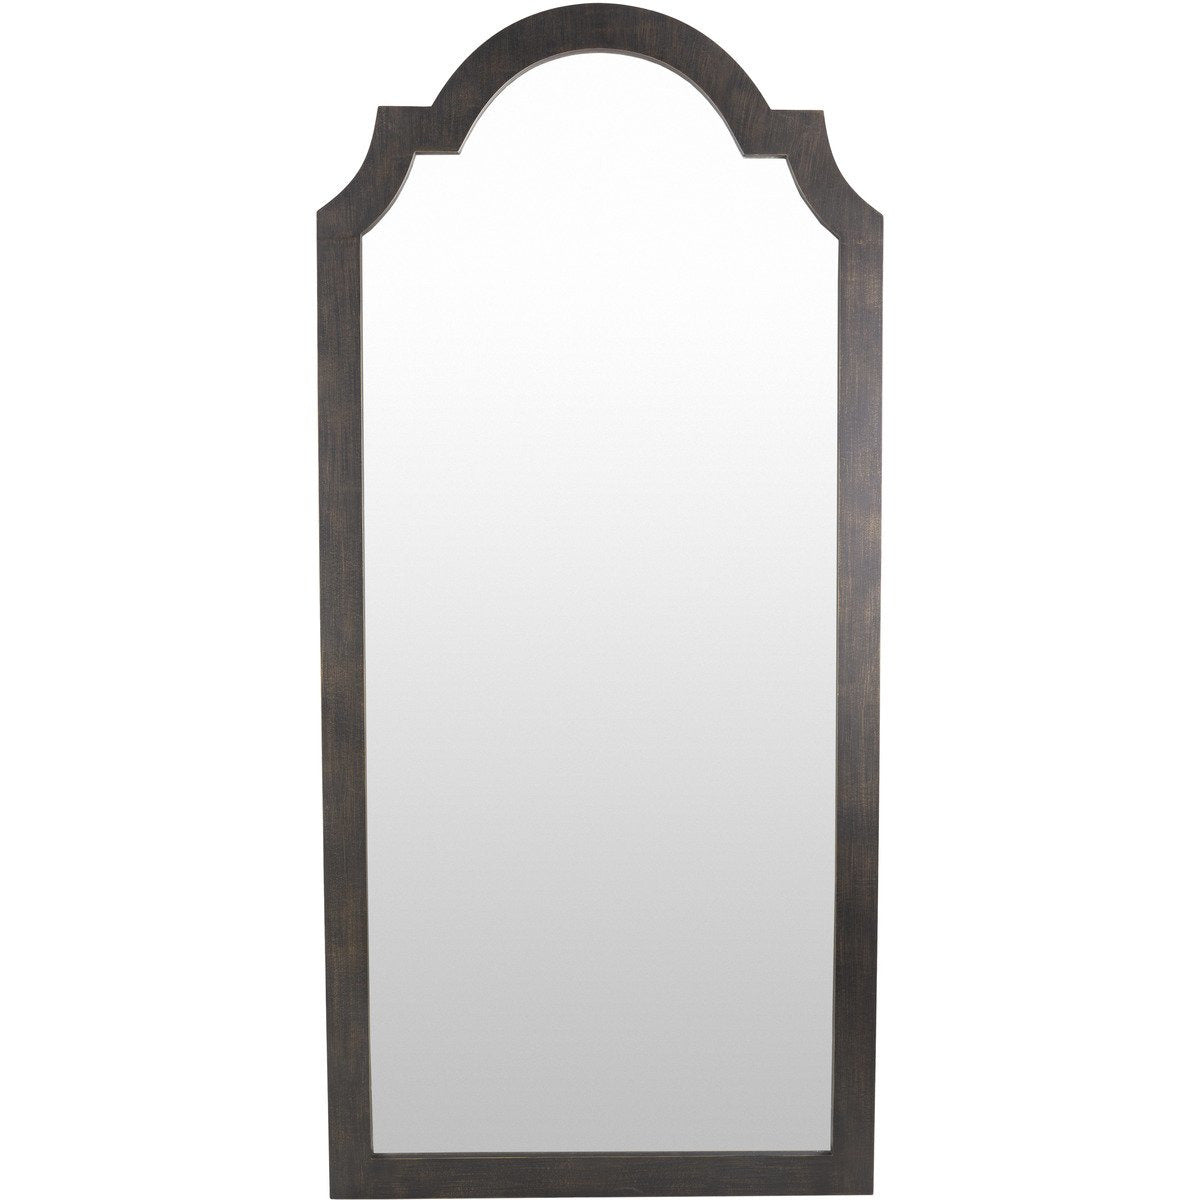 "Mirrors - Oriel OIE-001 35"" X 75"" Full Length Floor Mirror"